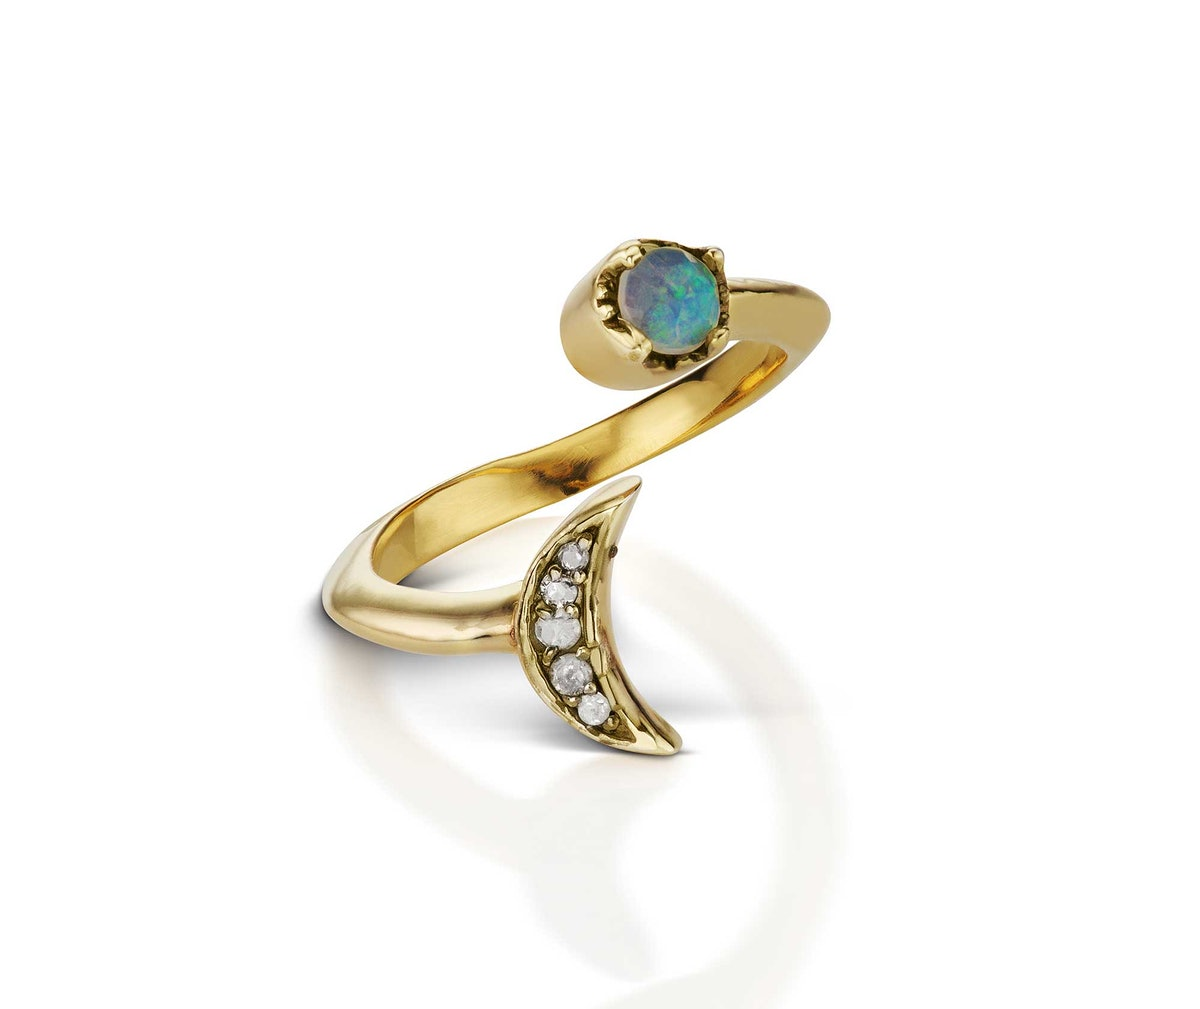 Mania Mania yellow gold and opal ring